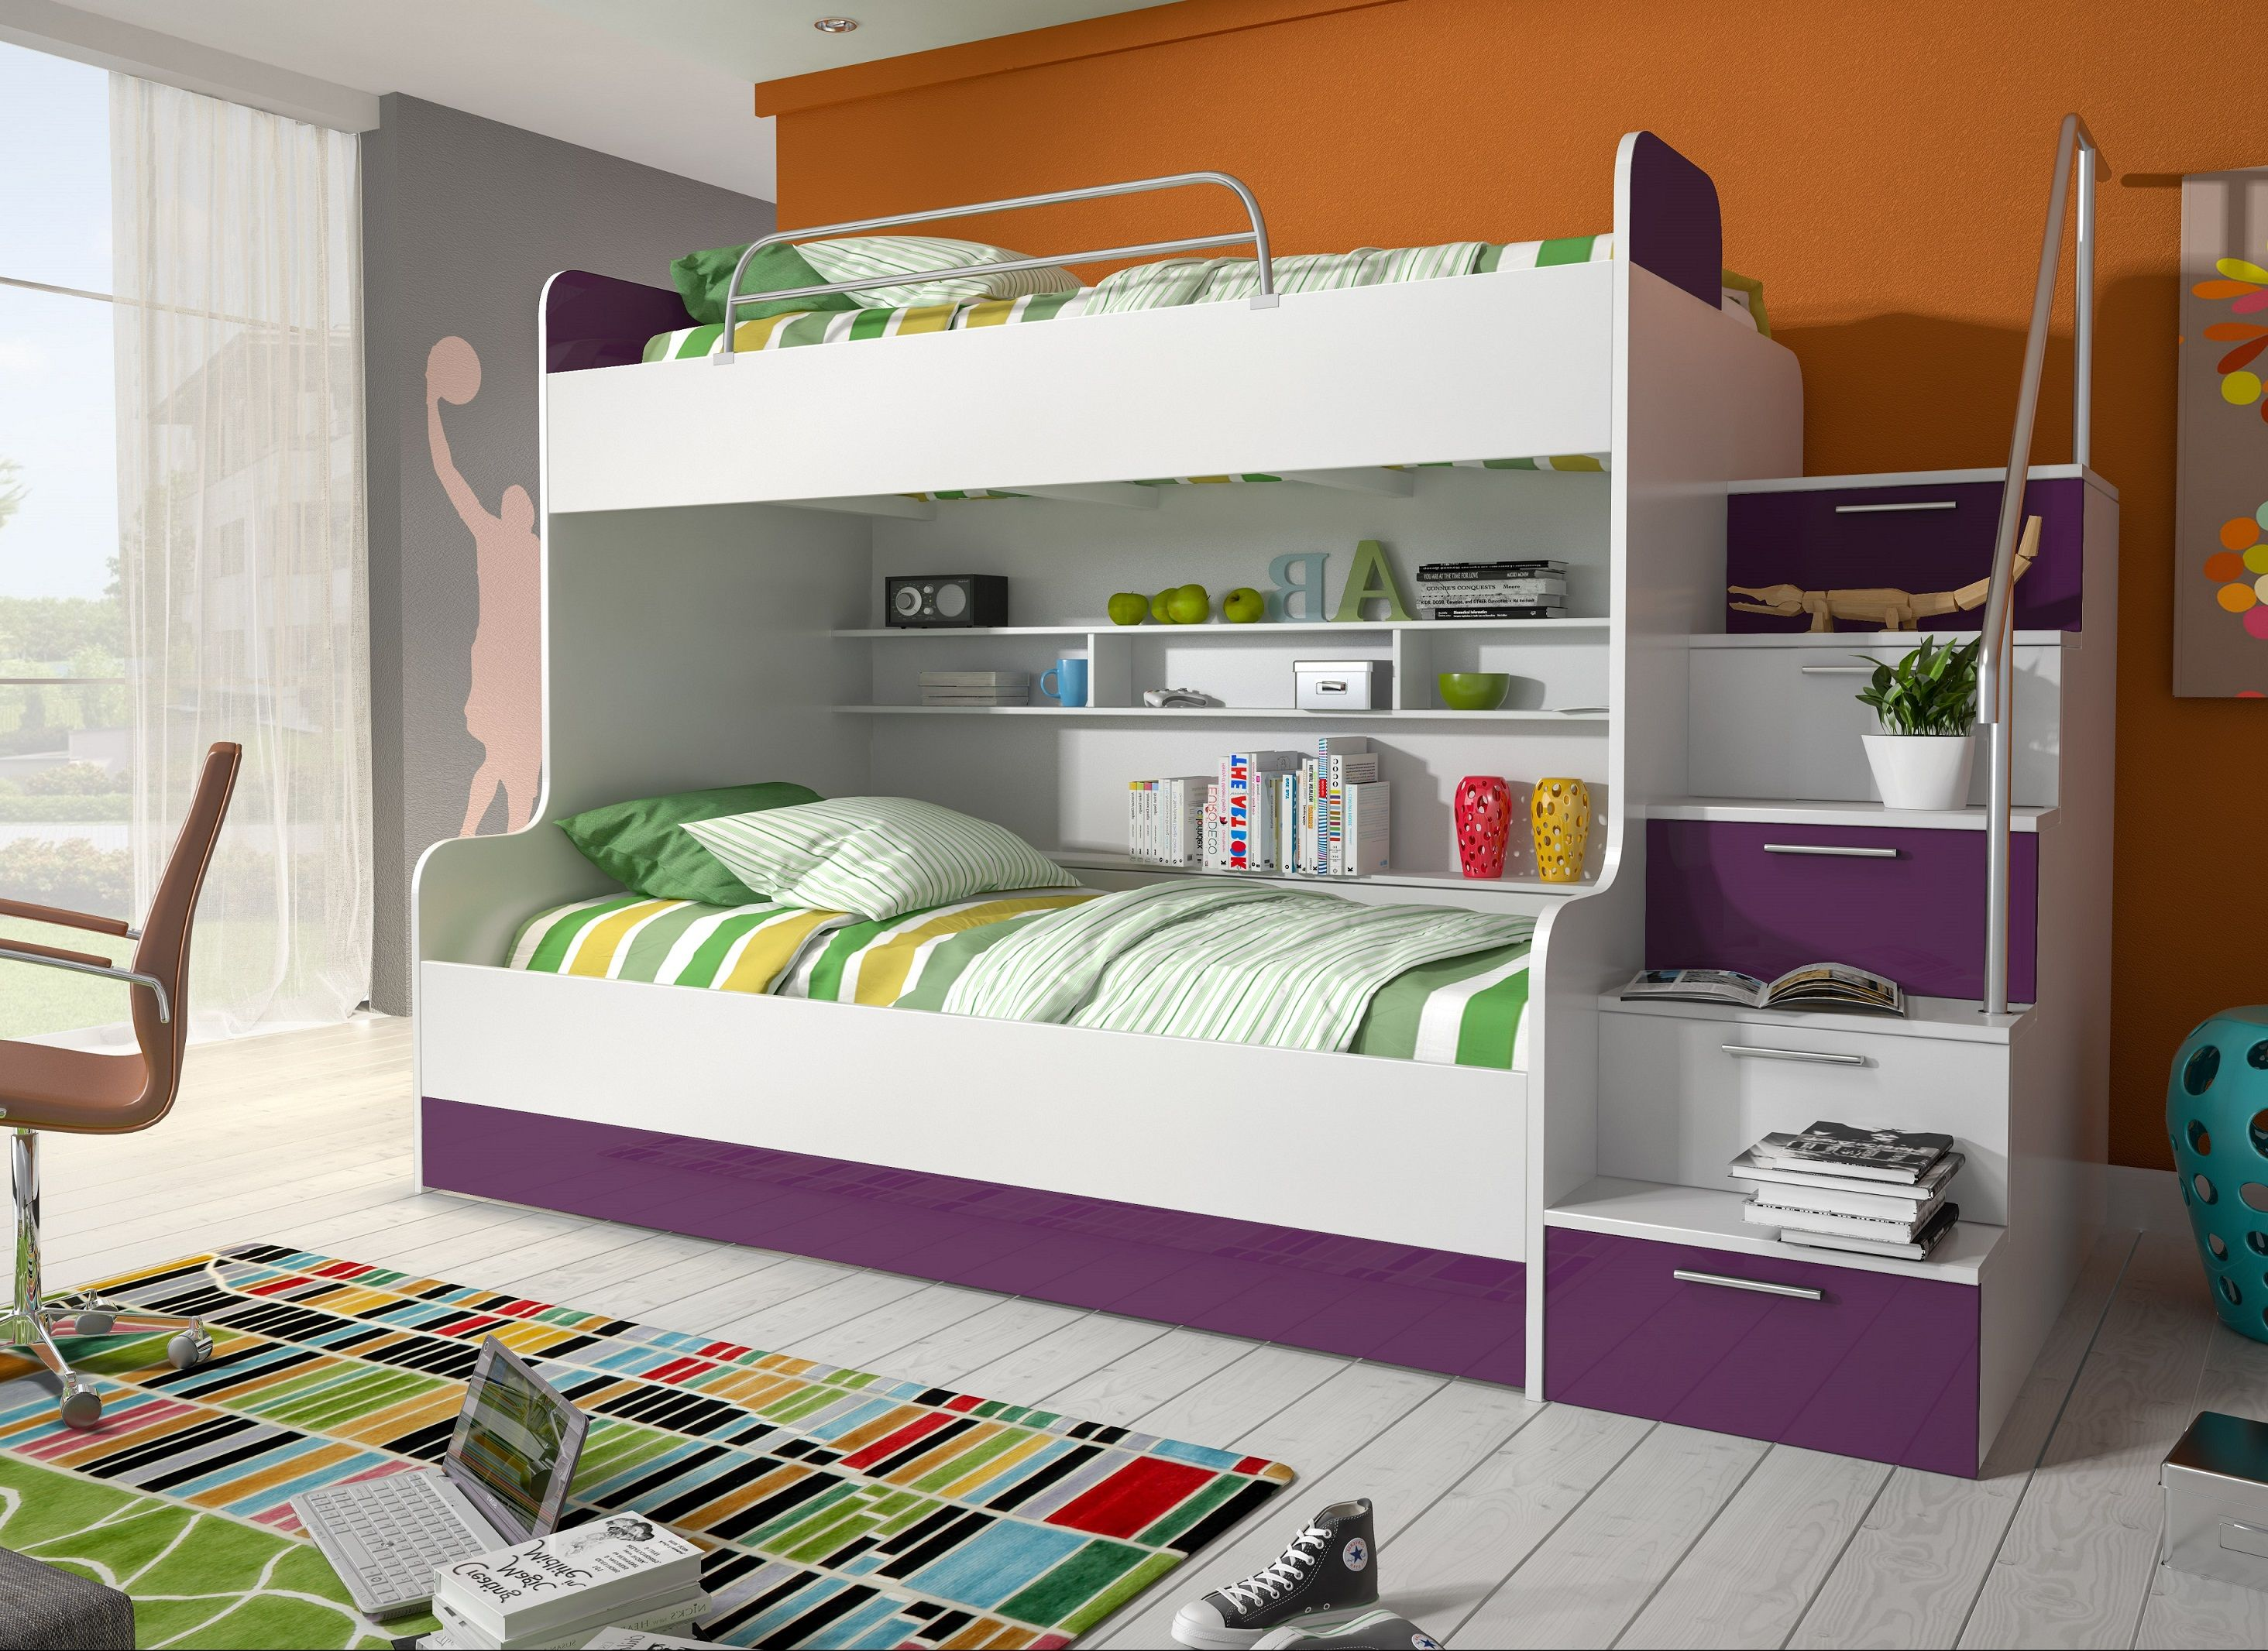 etagenbett kinderbett lila mit seitlicher treppe rechts etagenbett kinderbetten und moderne. Black Bedroom Furniture Sets. Home Design Ideas